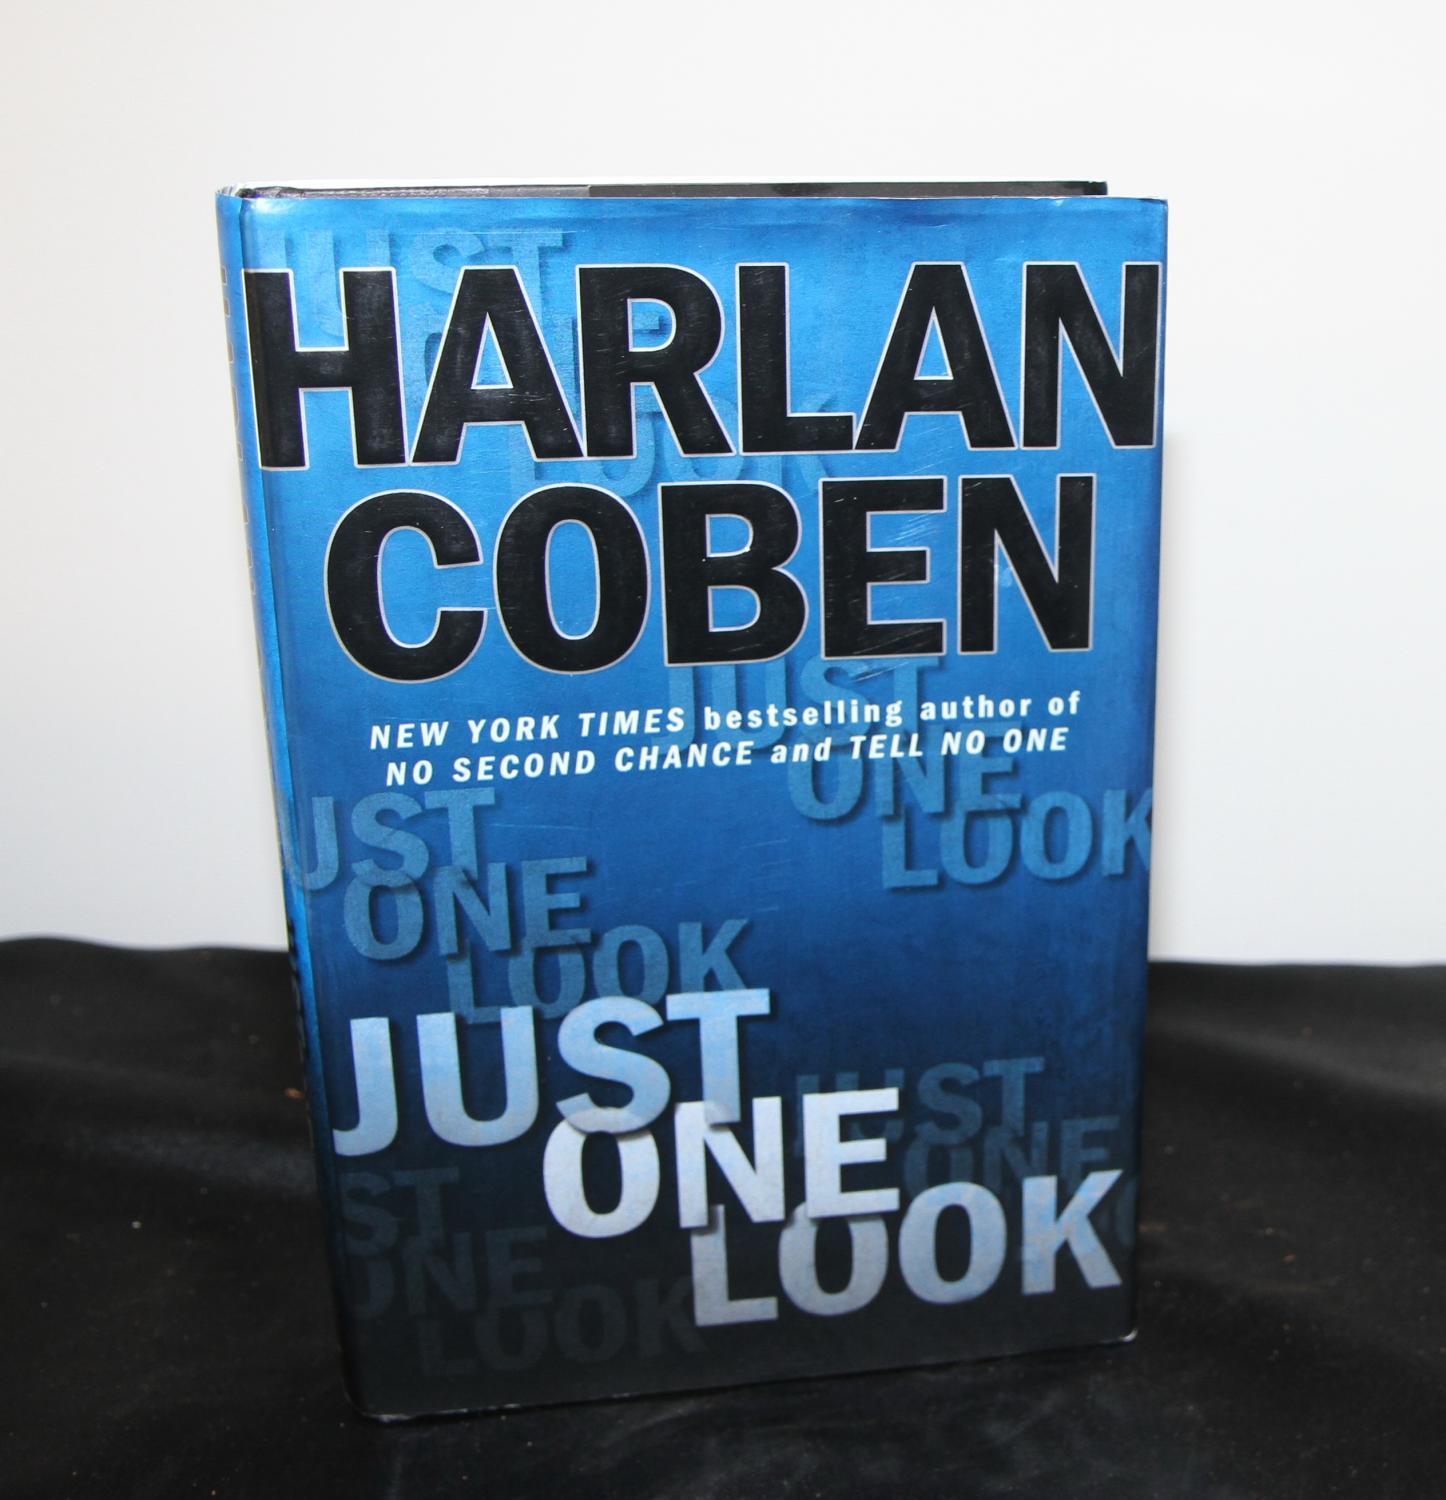 Just One Look Coben, Harlan